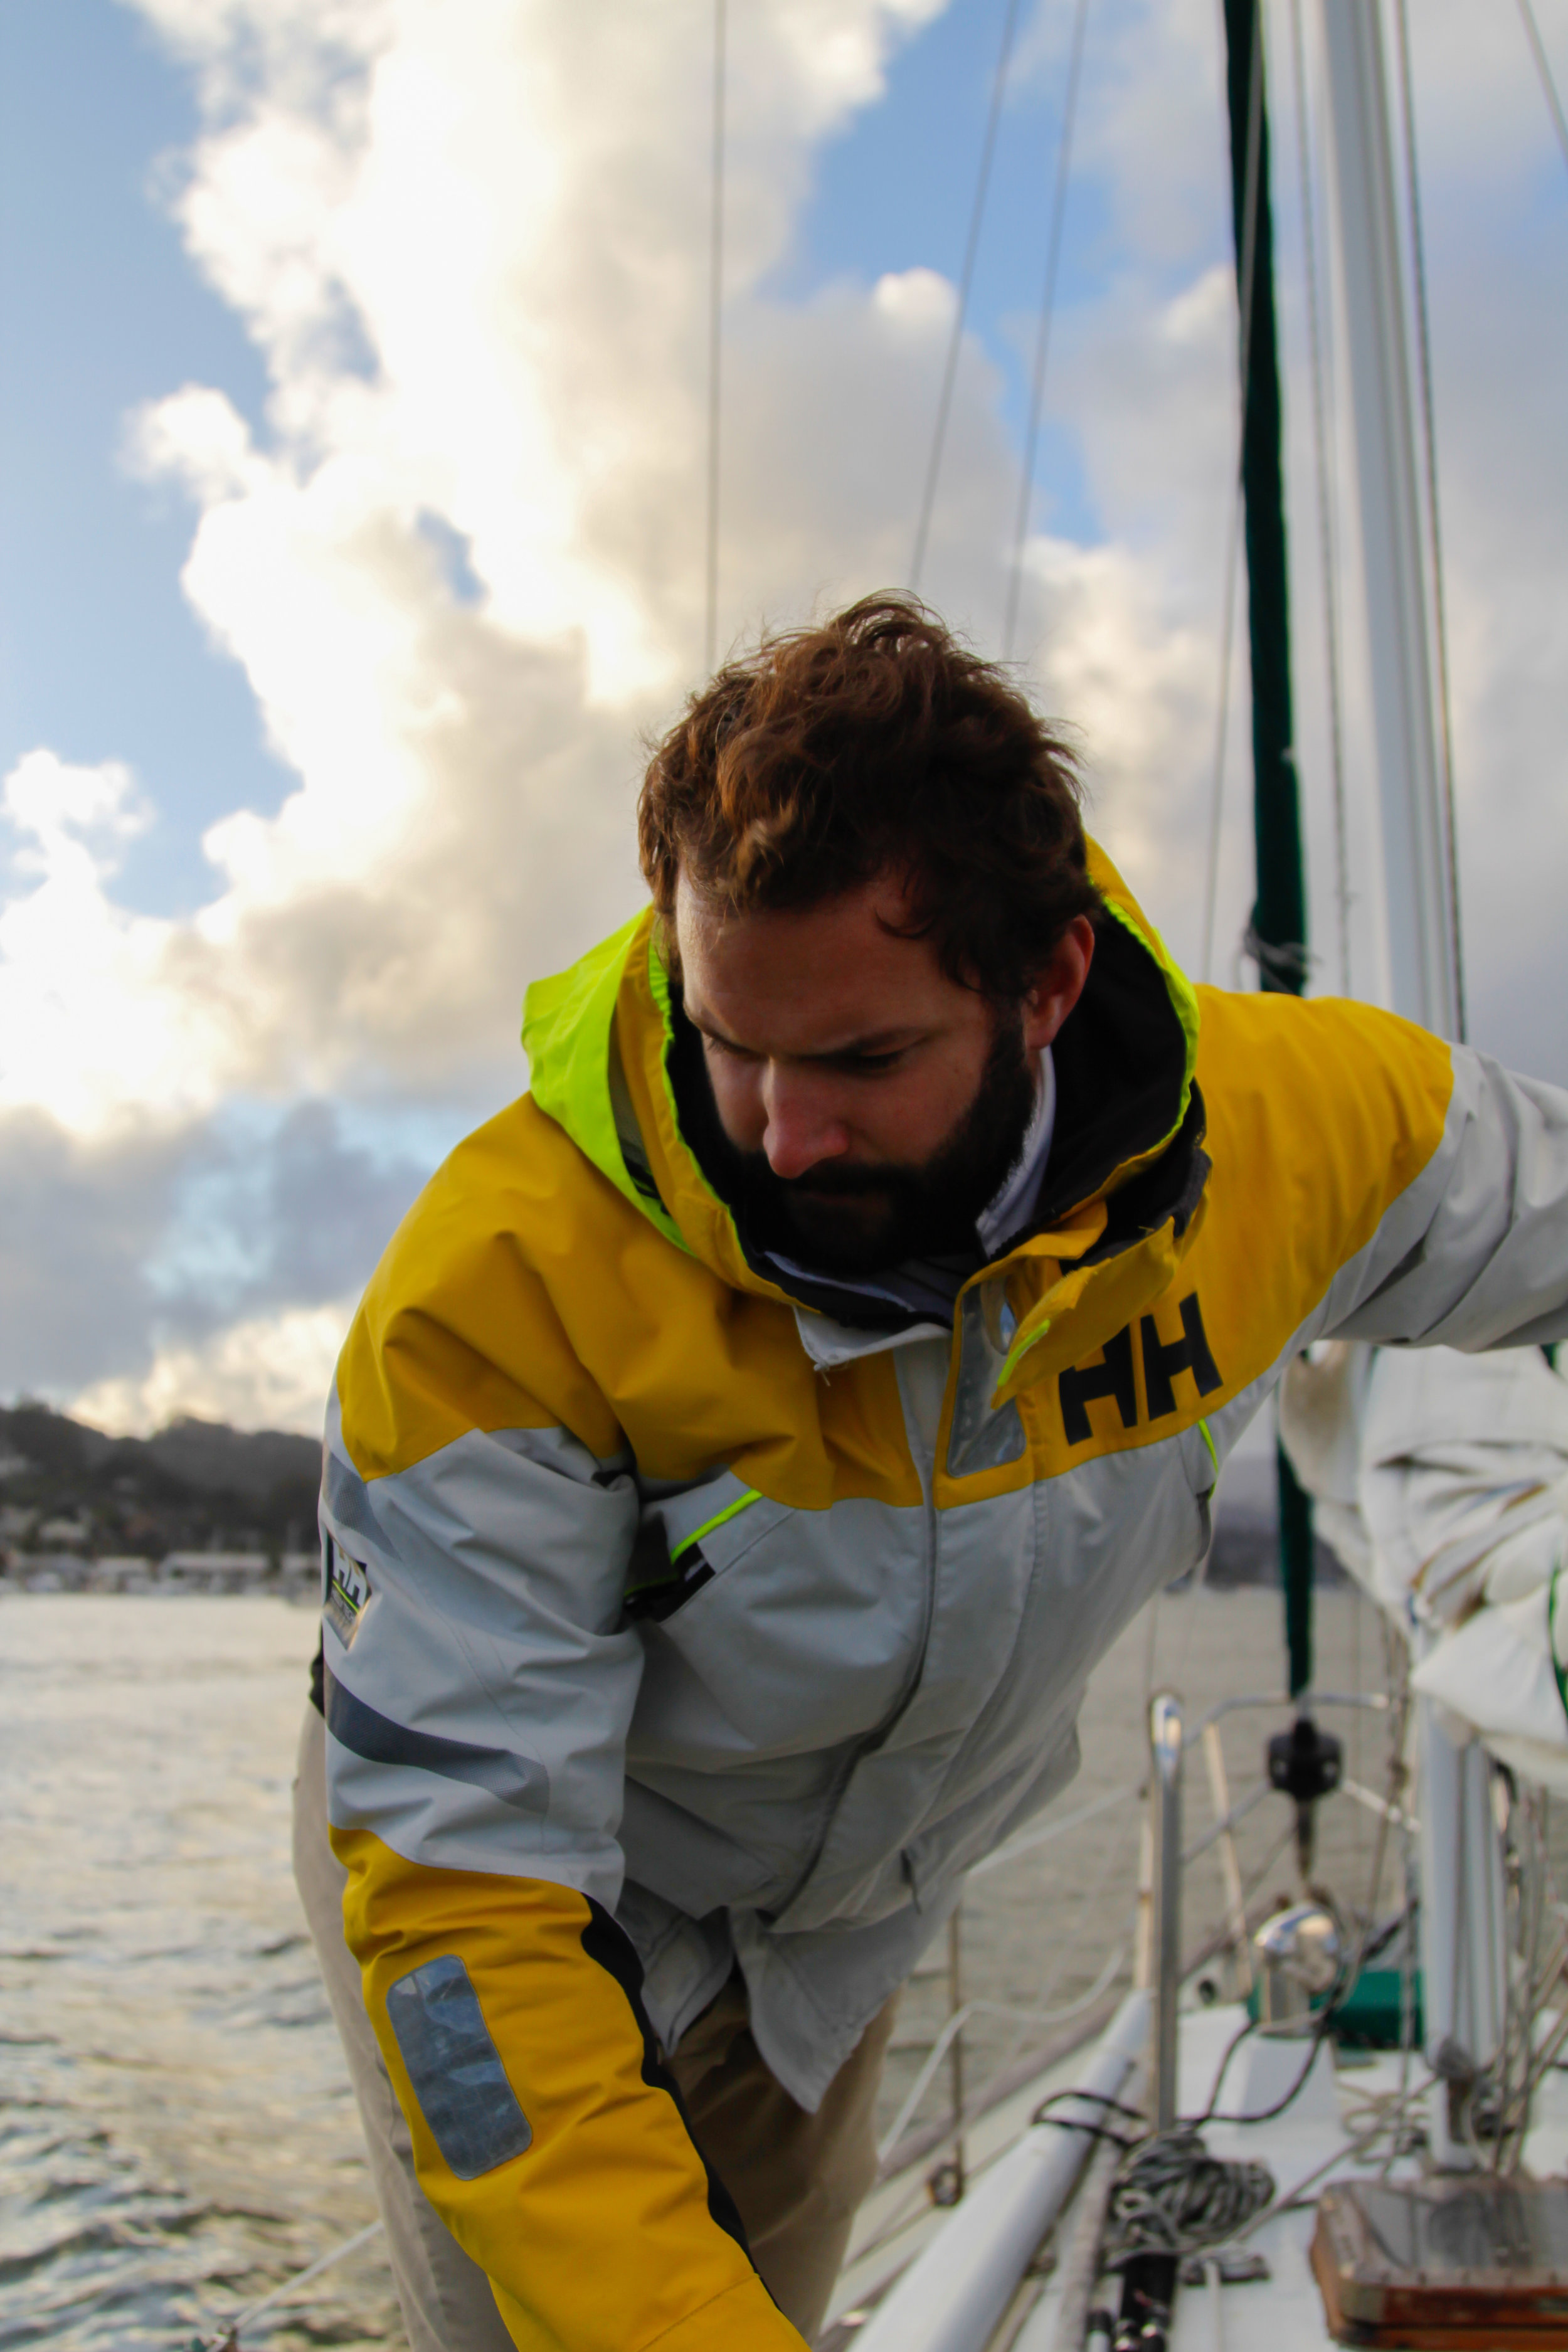 Want to know what it's like to live on a sailboat? Read about it here!